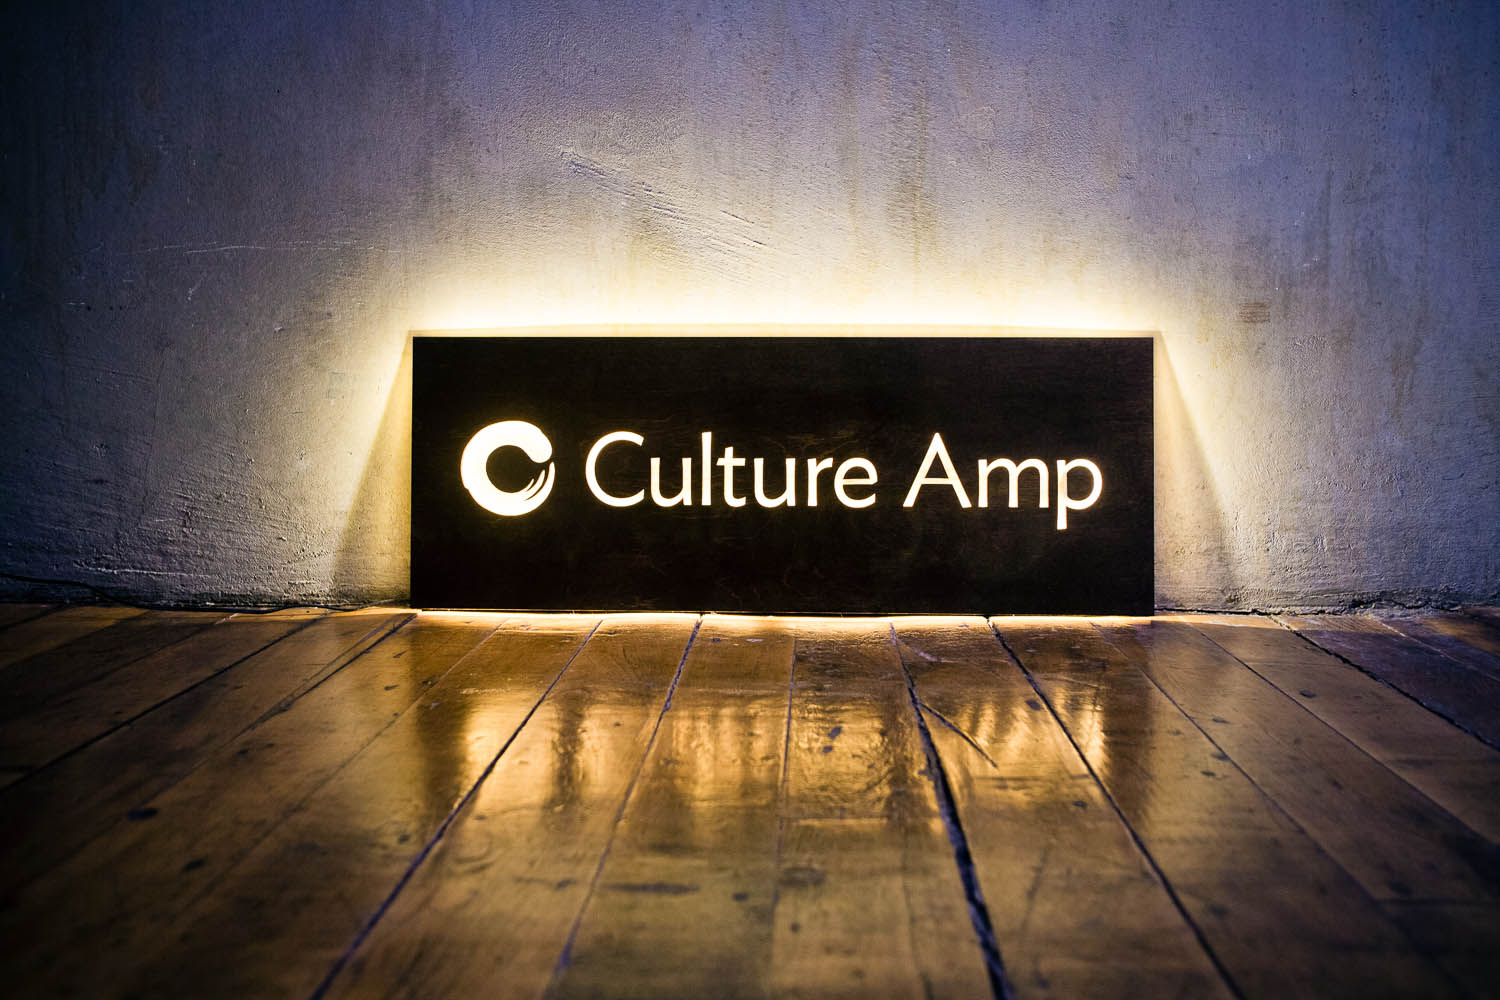 Culture Amp Illuminated Wood Sign